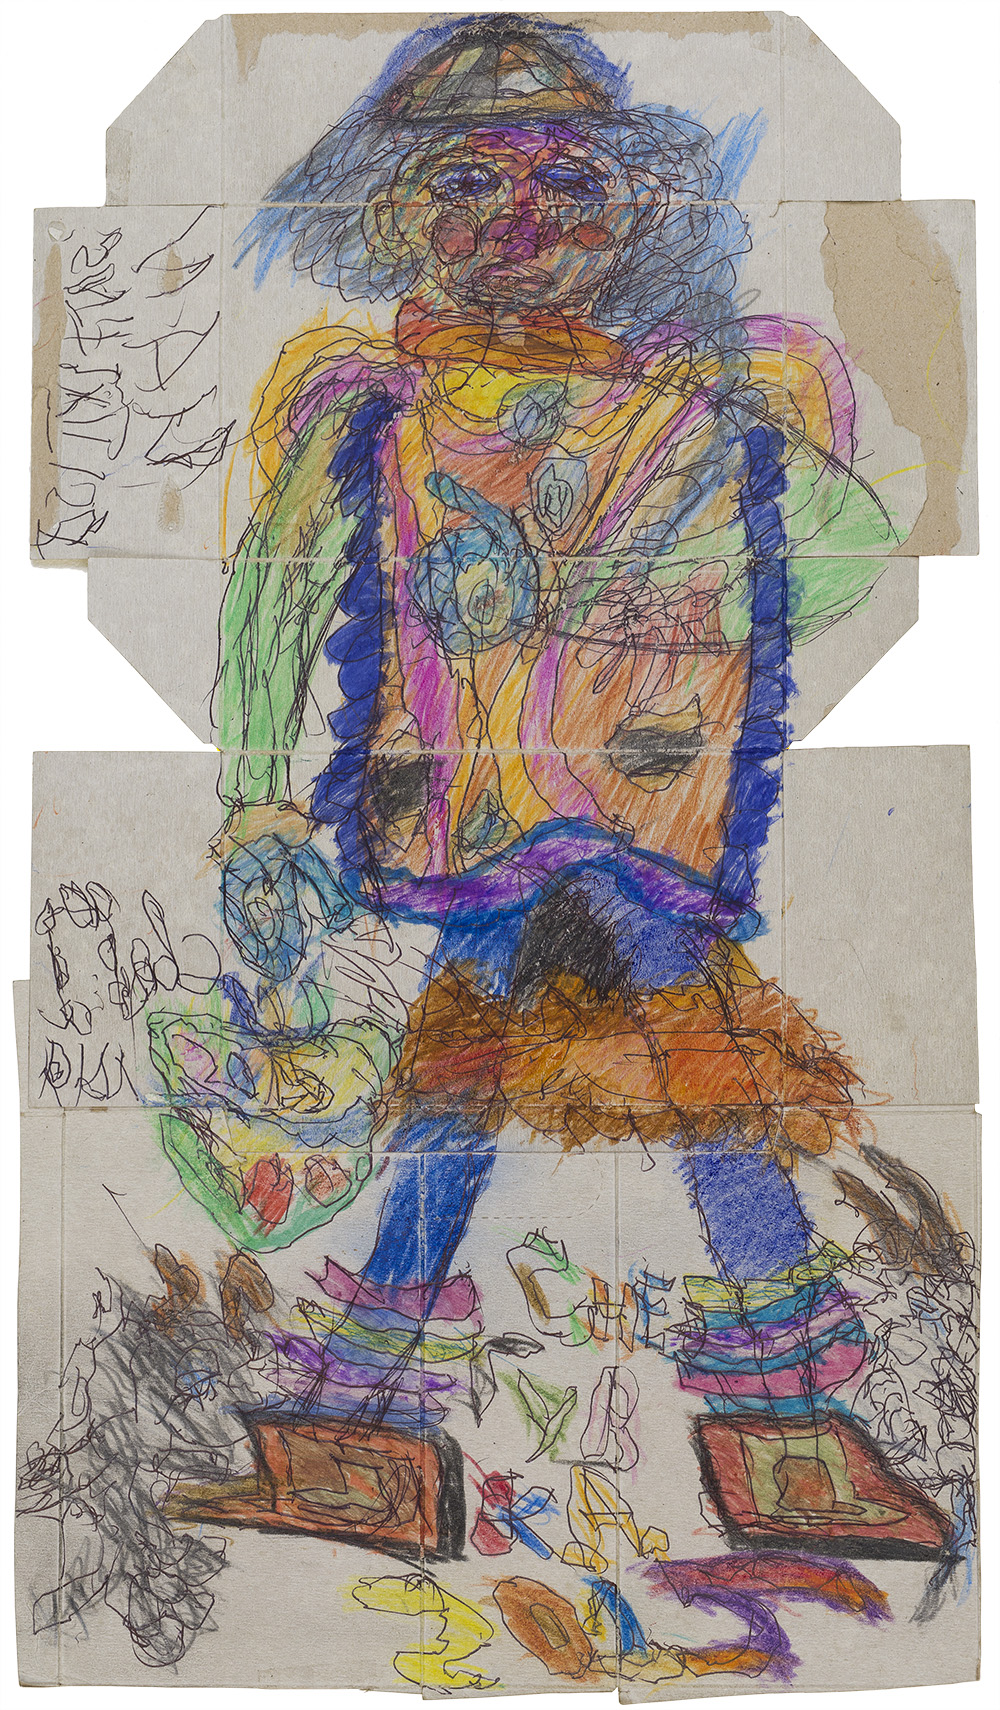 Ilya Natarevich Snow Maiden, 2015 Crayon, ball point pen on cereal box 22 x 12.5 inches 55.9 x 31.8 cm INa 16